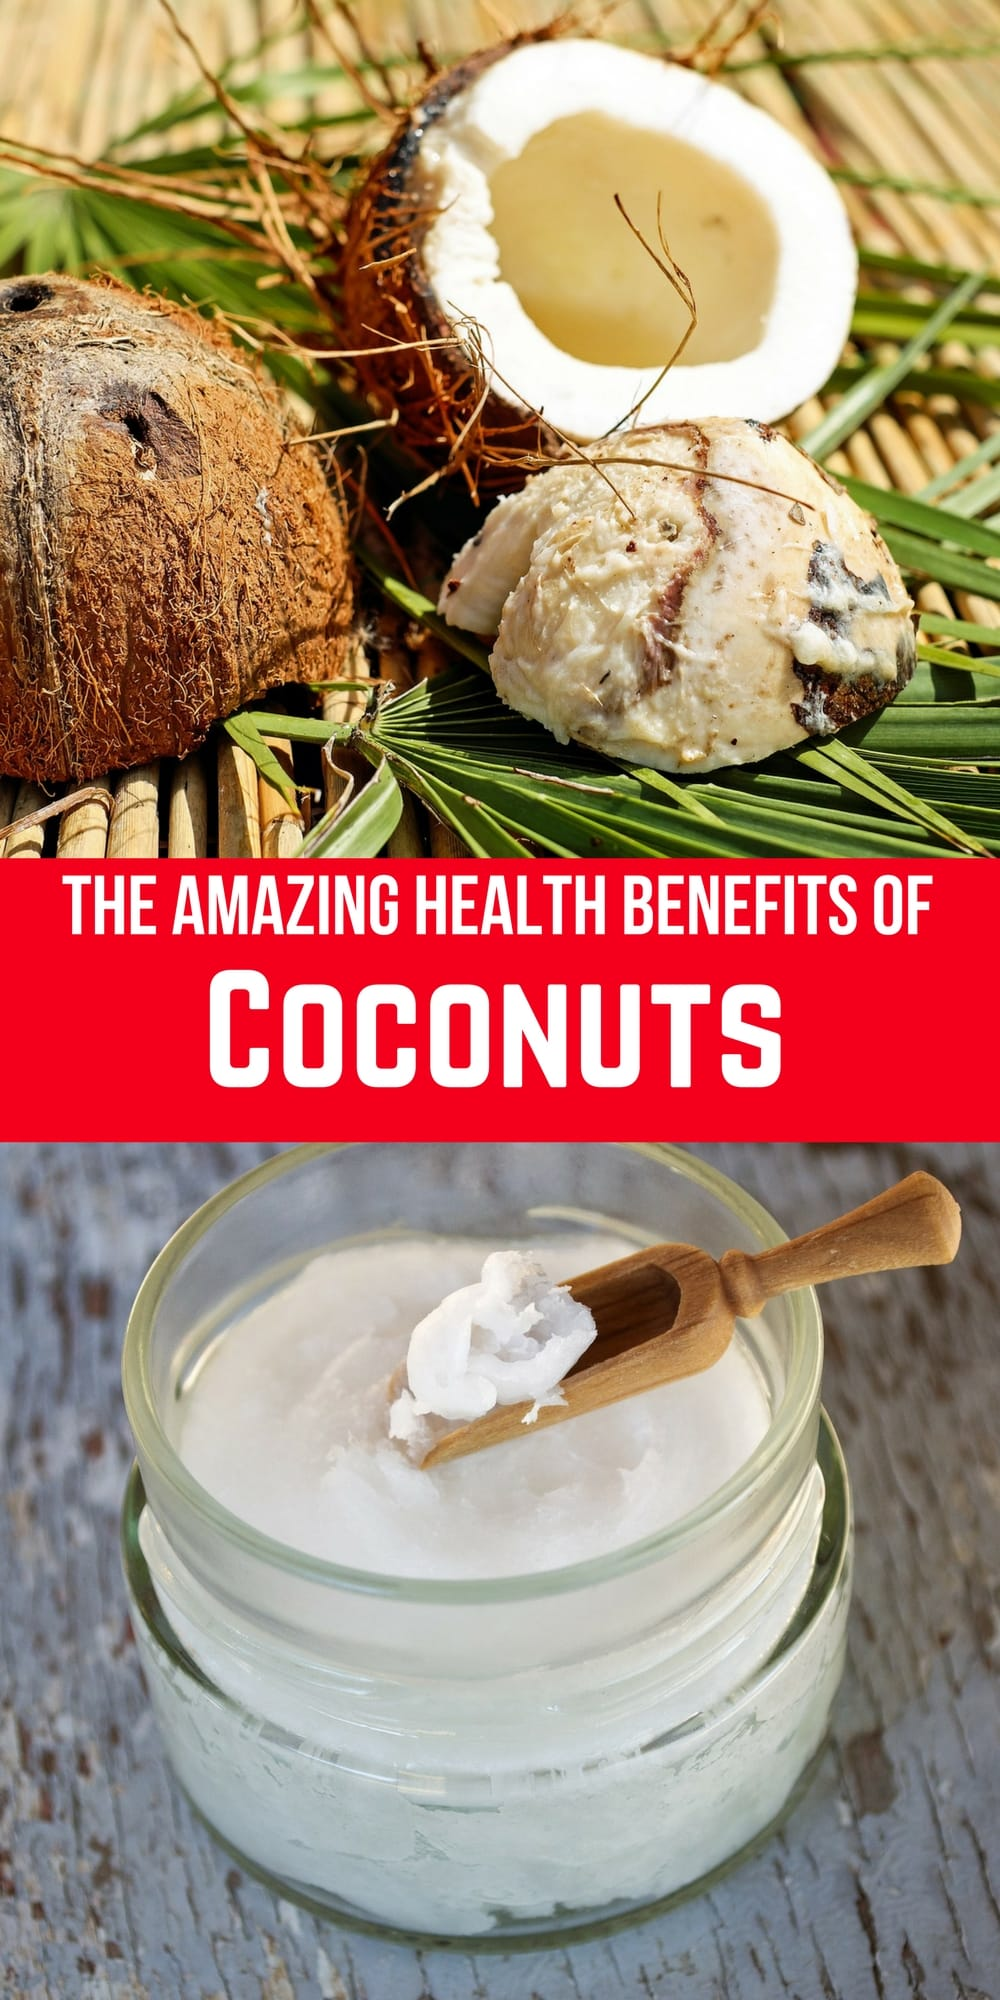 Everything you ever wanted to know about coconut health!! There has been a lot of hype over the past few years about coconuts and their health benefits. This posts breaks down every part of the coconut and the health benefits associated with it.